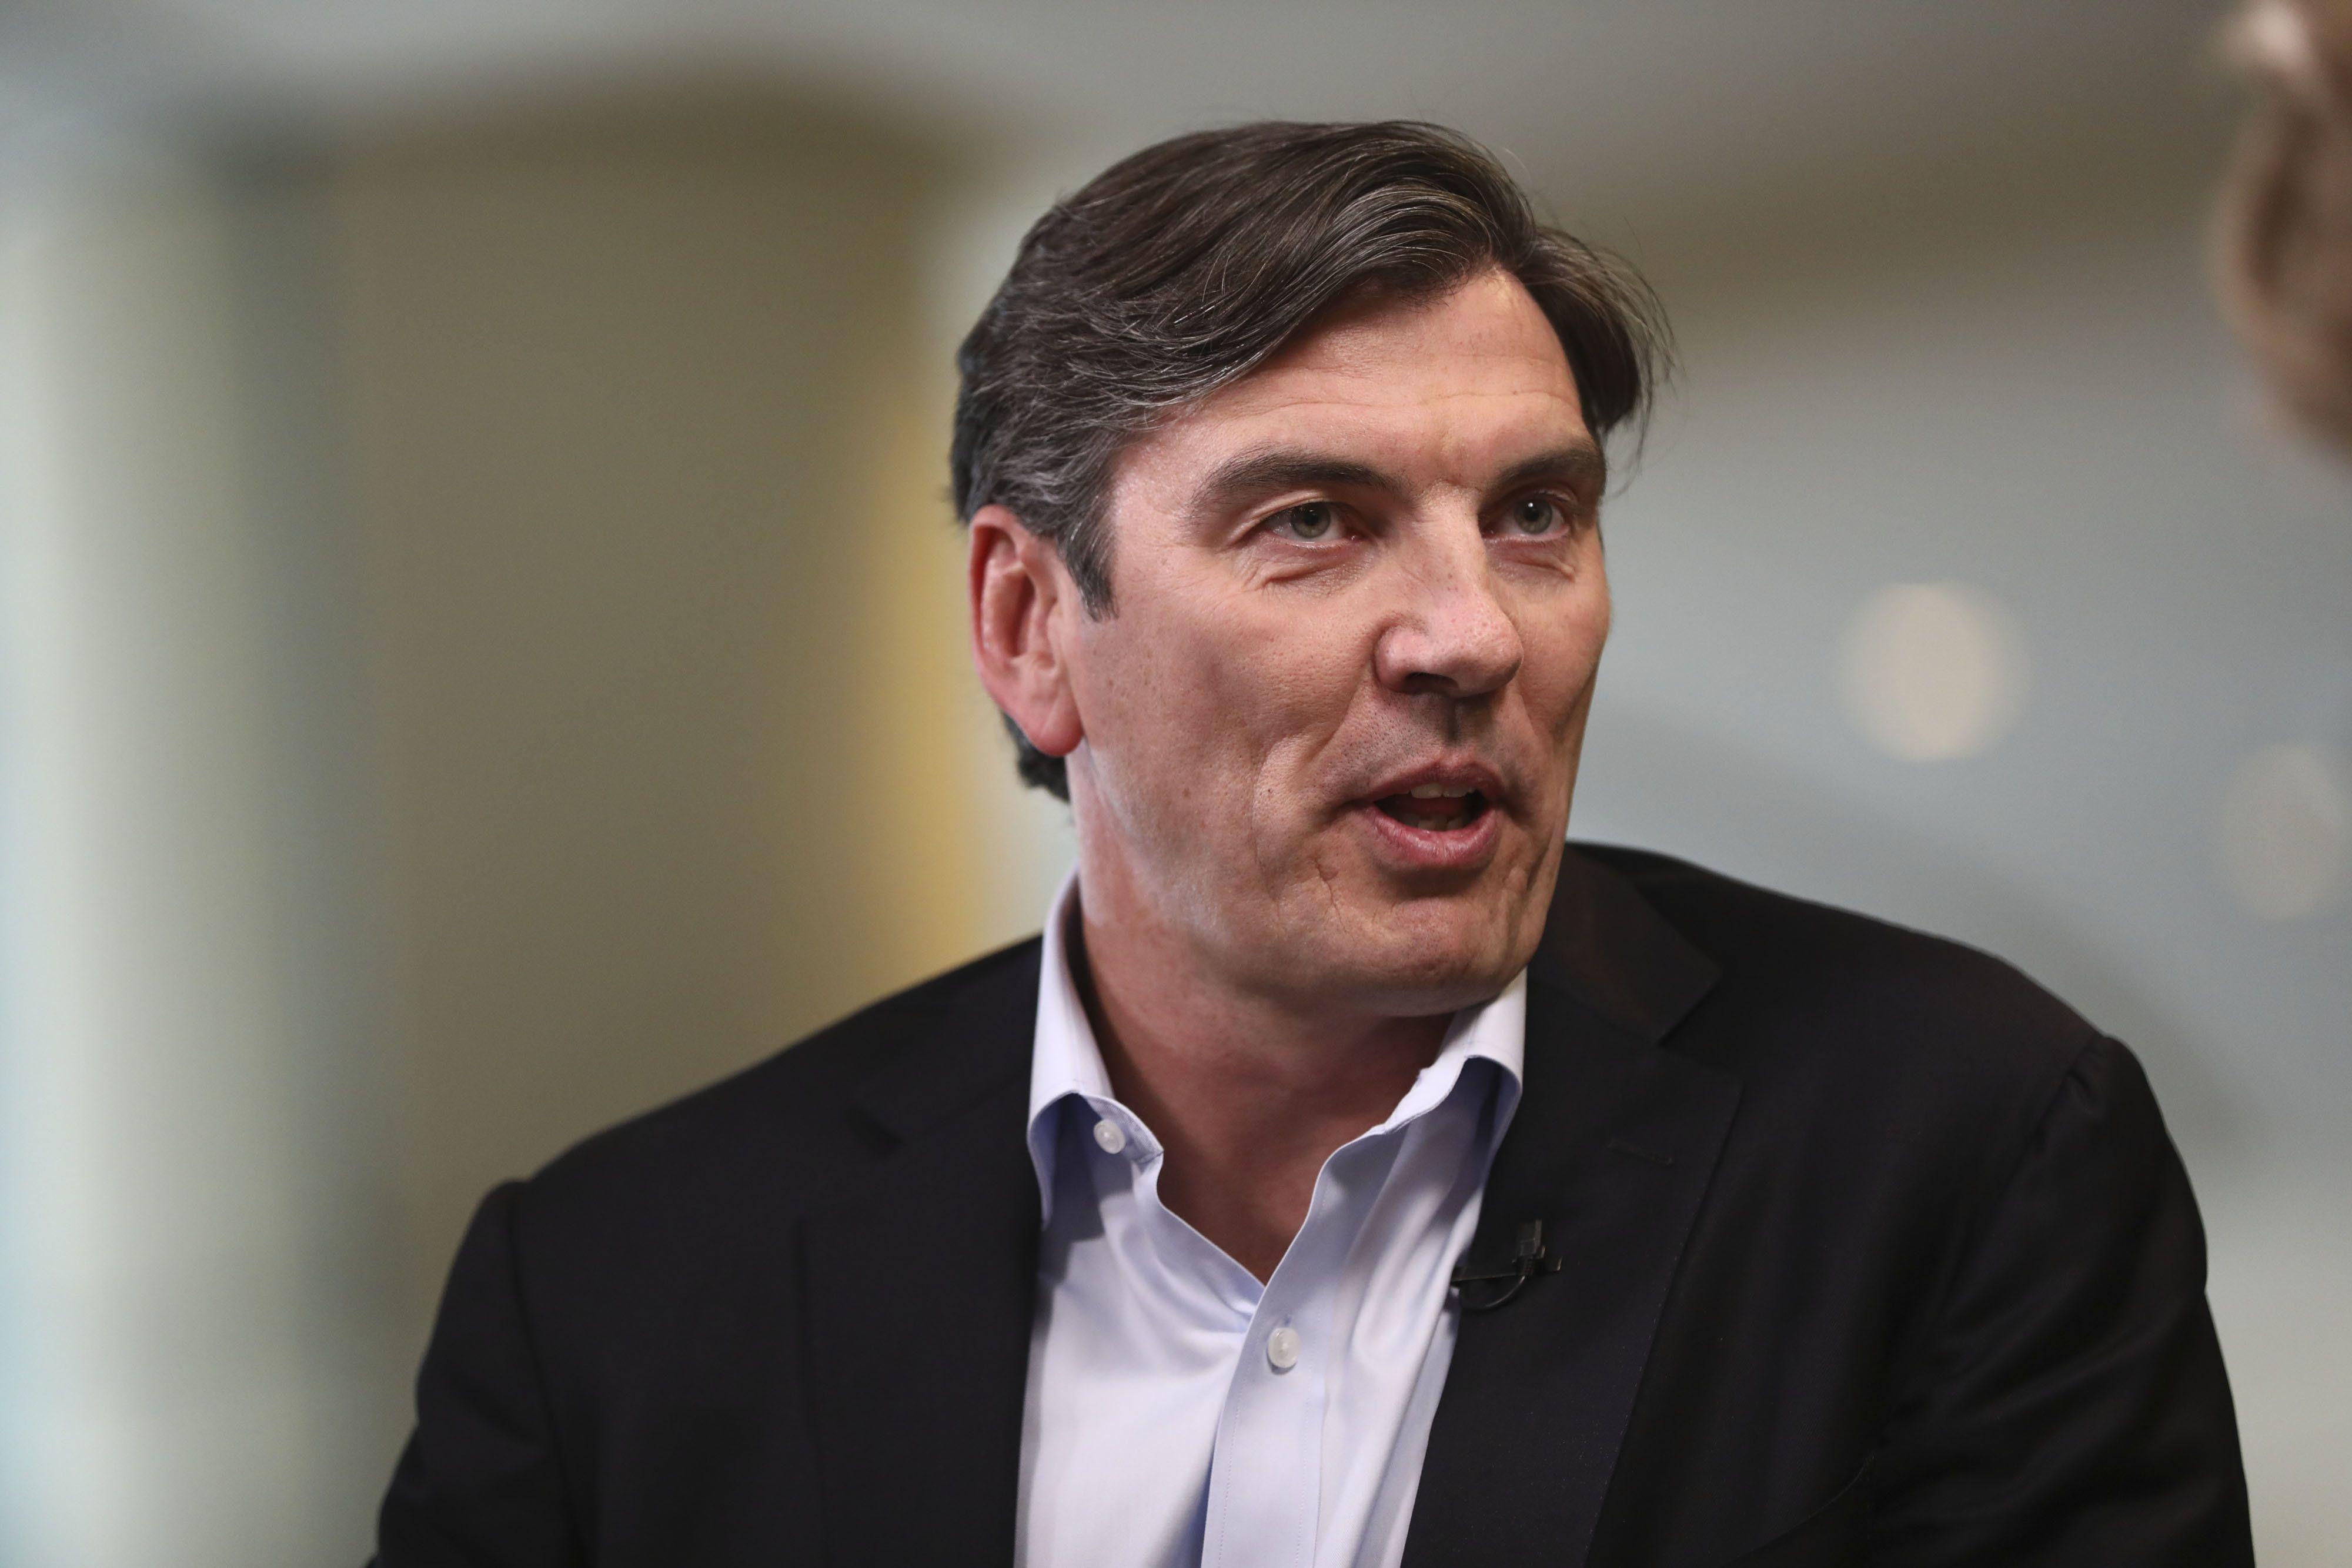 Tim Armstrong, chief executive officer of Oath Inc., speaks during a Bloomberg Television interview at the Milken Institute Global Conference in Beverly Hills, California, U.S., on Monday, April 30, 2018. The conference brings together leaders in business, government, technology, philanthropy, academia, and the media to discuss actionable and collaborative solutions to some of the most important questions of our time. Photographer: Patrick T. Fallon/Bloomberg via Getty Images